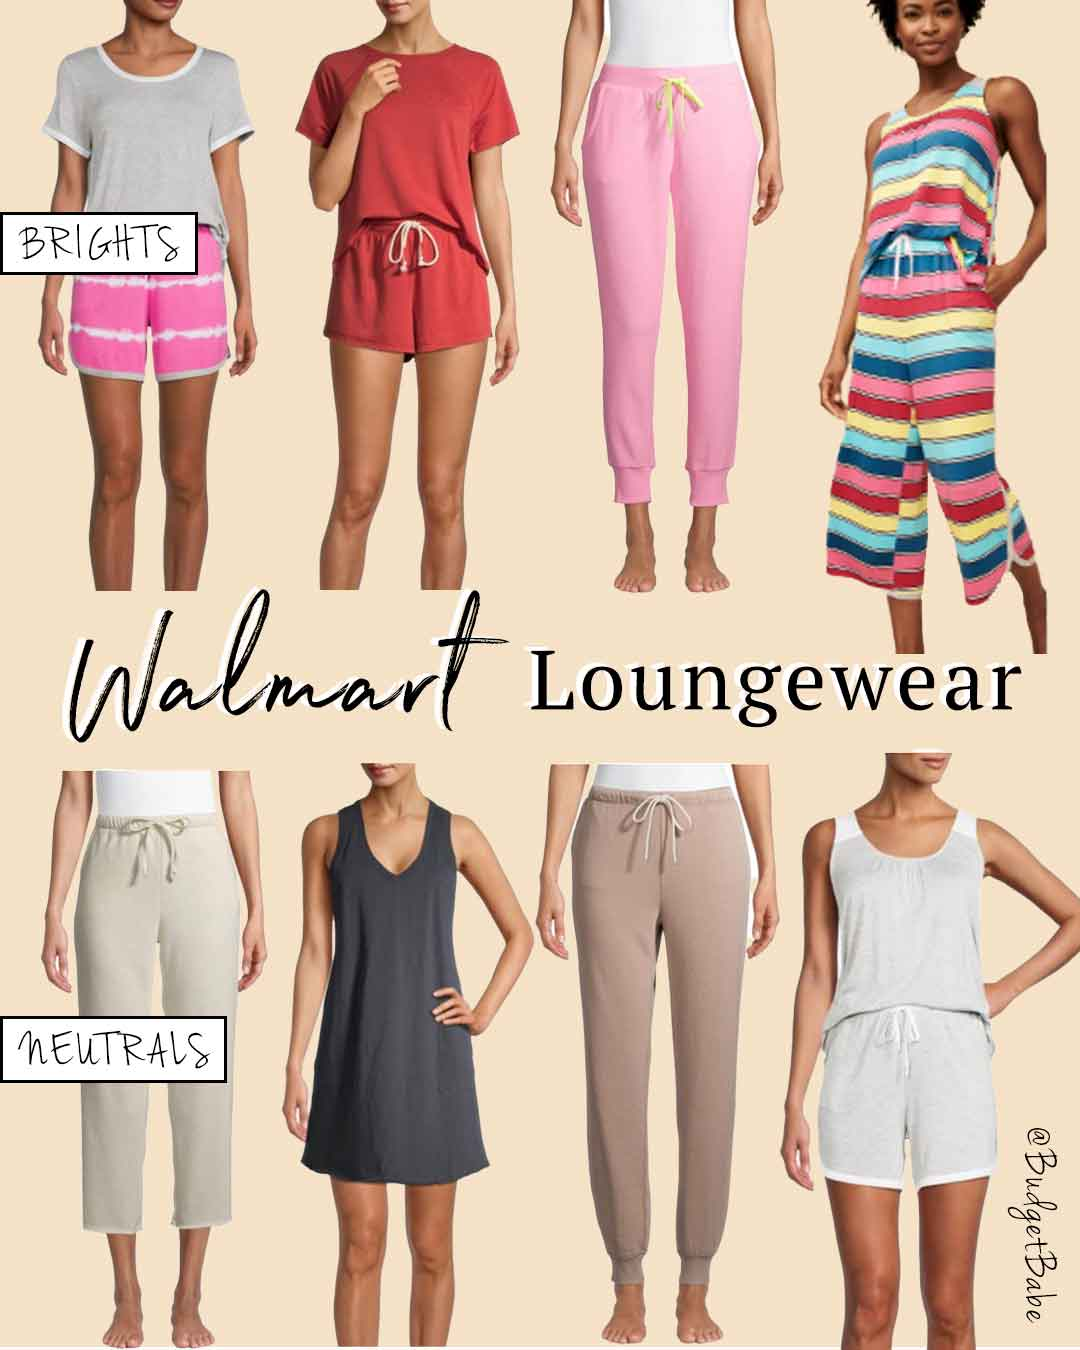 Walmart Loungewear and PJ sets on a budget, new from spring and summer